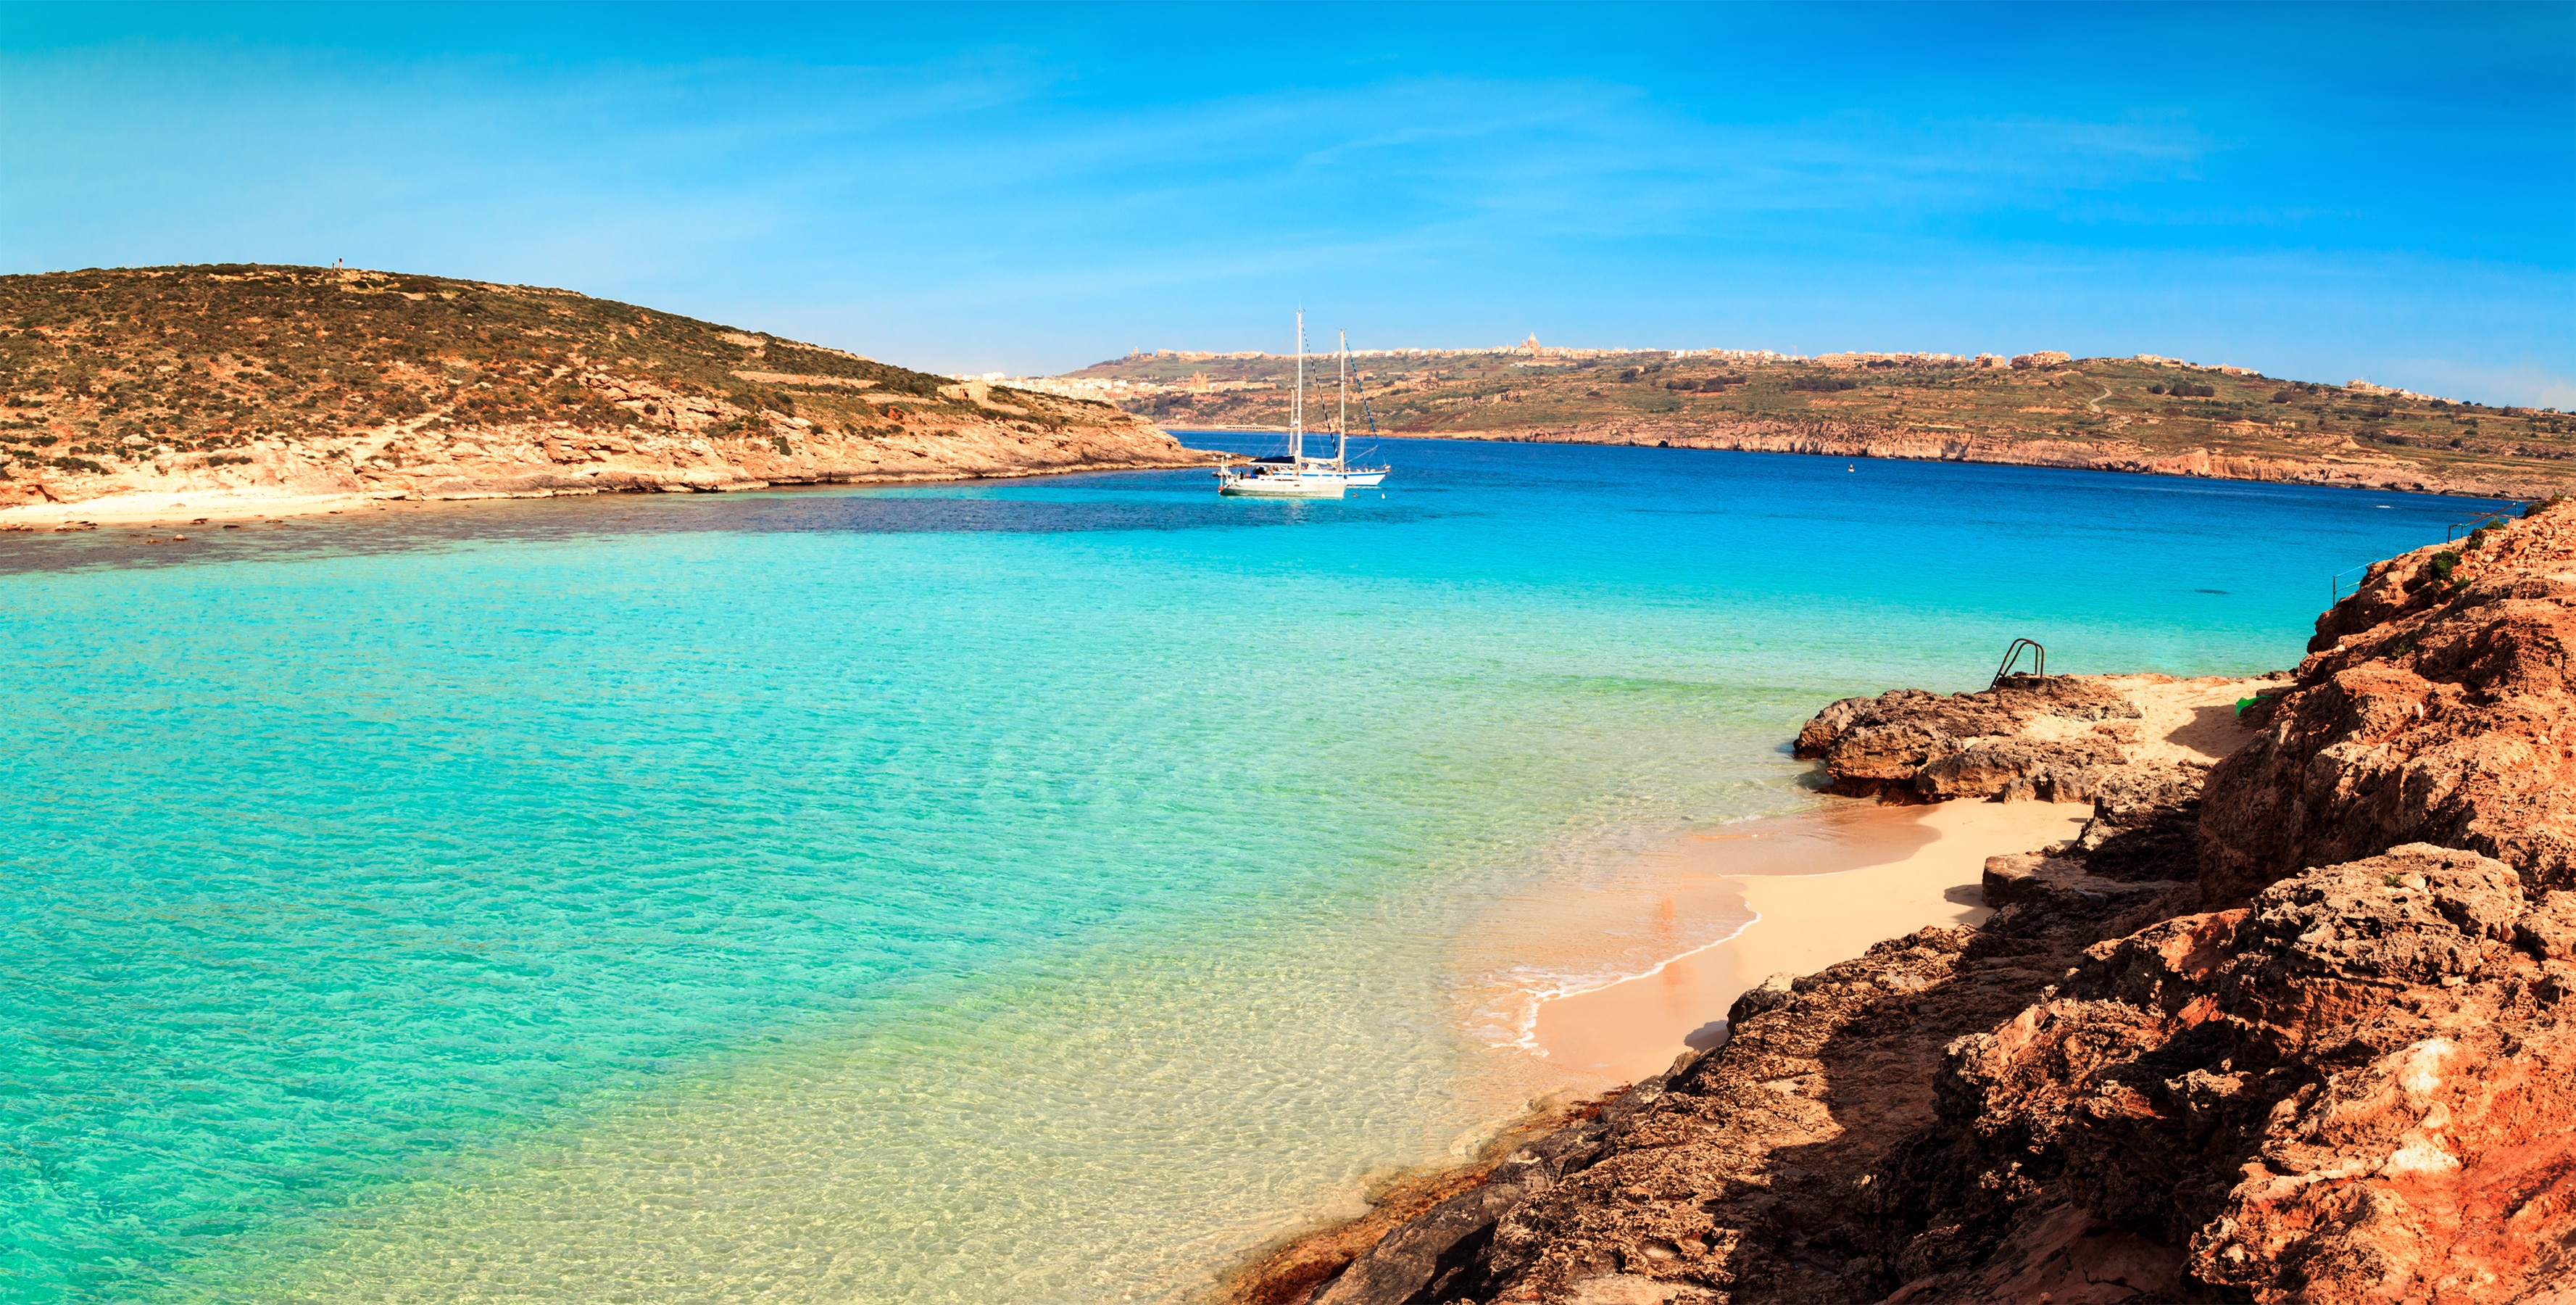 The Blue Lagoon on Comino Island, Malta Gozov